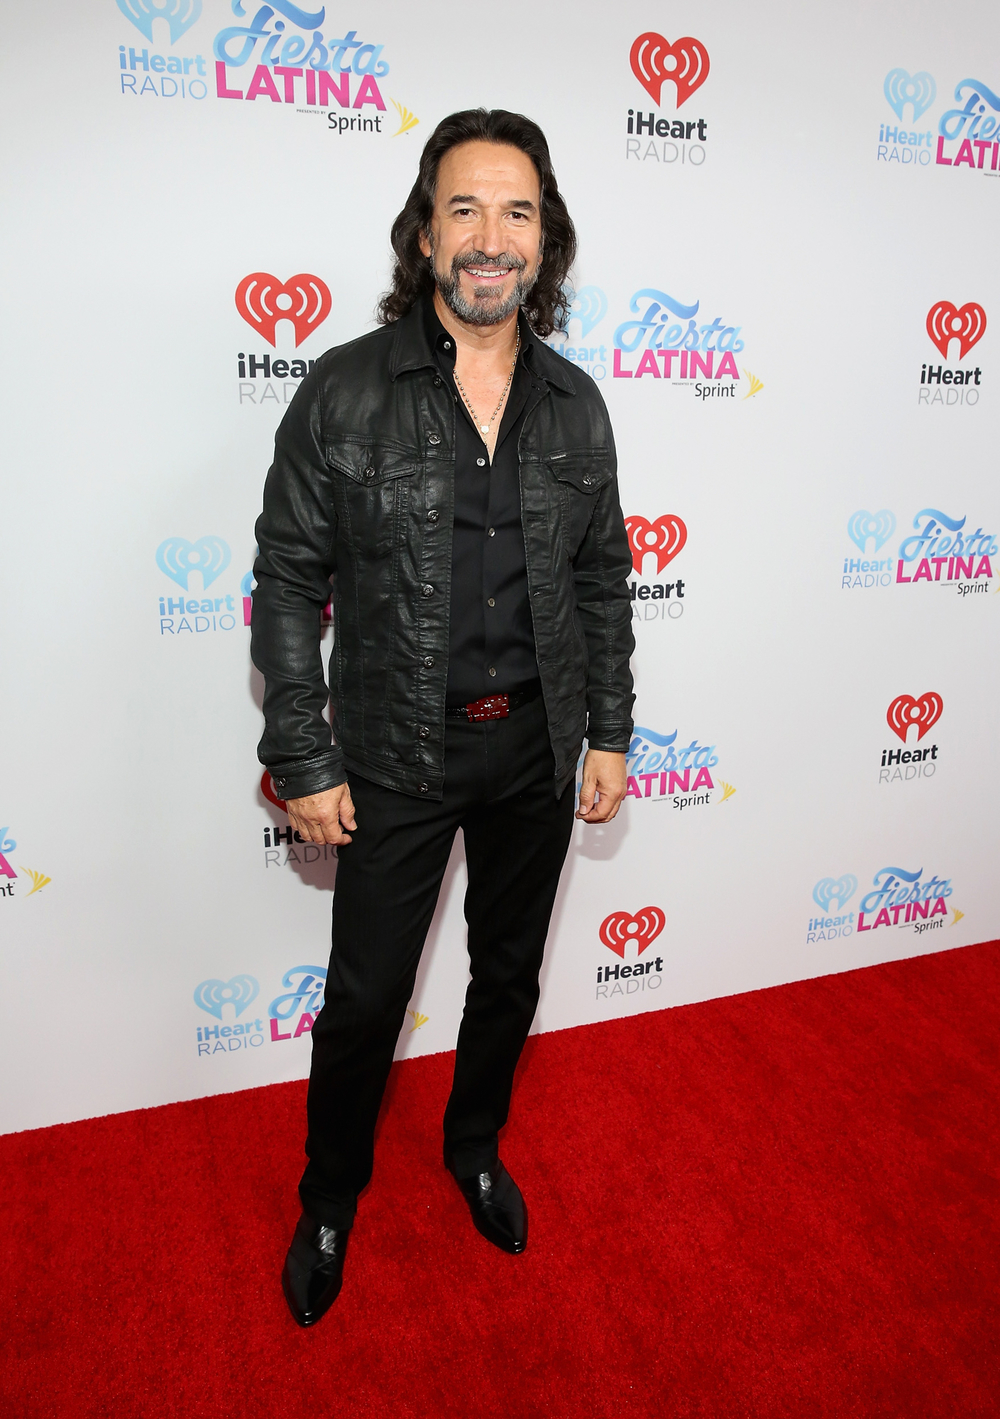 MIAMI, FL - NOVEMBER 07:  Recording artist Marco Antonio Solis attends iHeartRadio Fiesta Latina presented by Sprint at American Airlines Arena on November 7, 2015 in Miami, Florida.  (Photo by Aaron Davidson/Getty Images for iHeartMedia) *** Local Caption *** Marco Antonio Solis